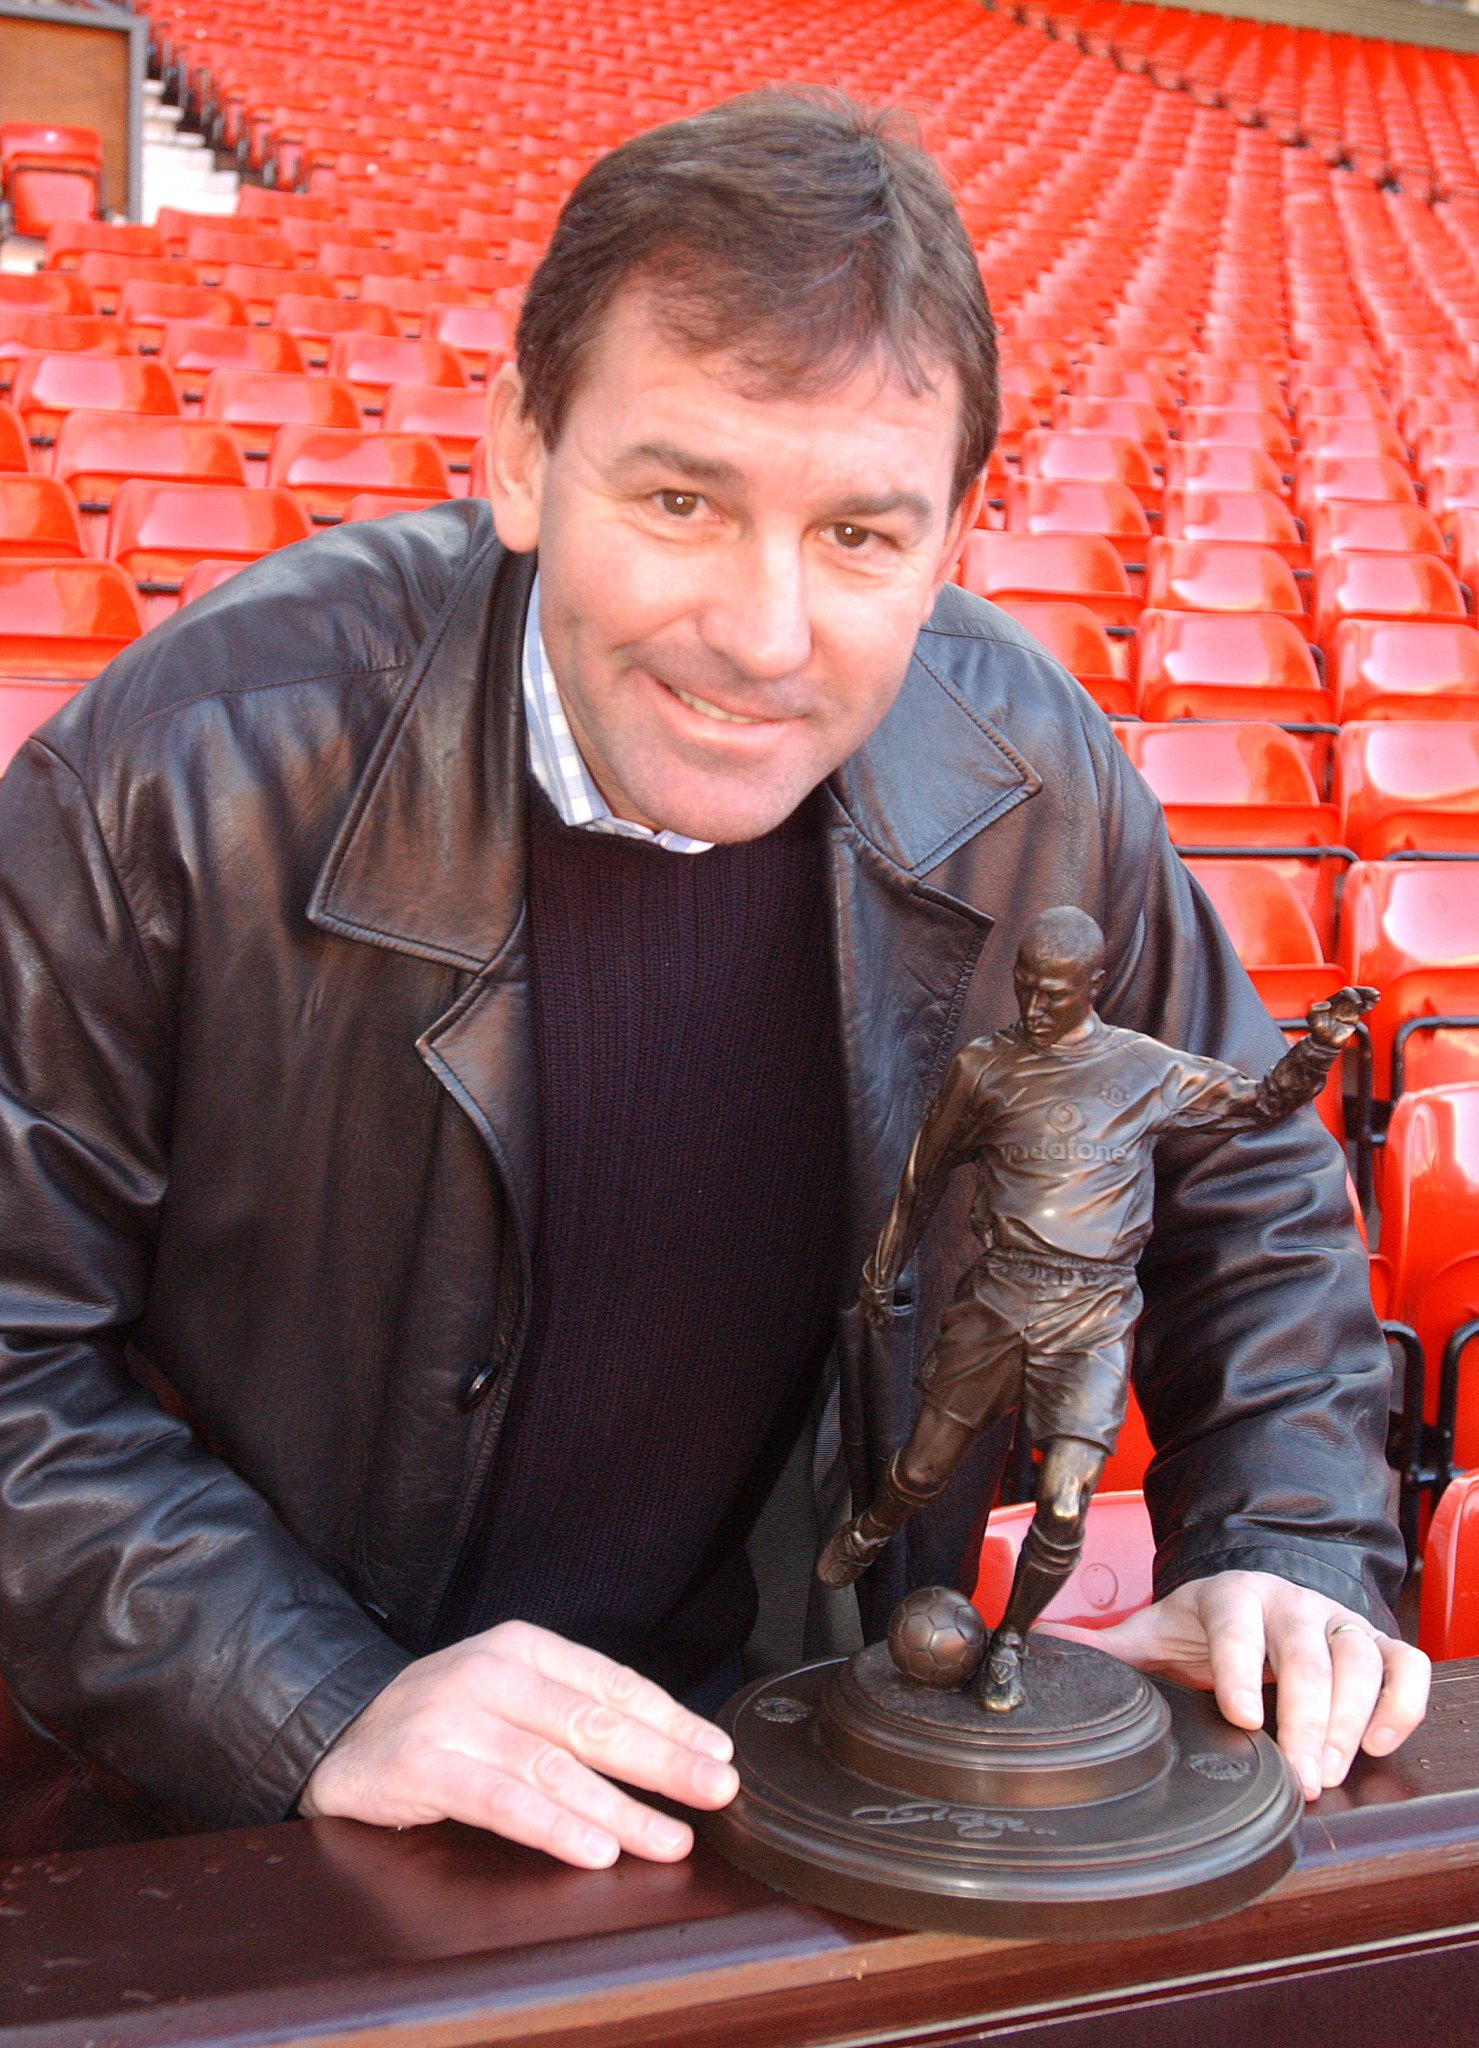 Happy birthday to United legend Bryan Robson!